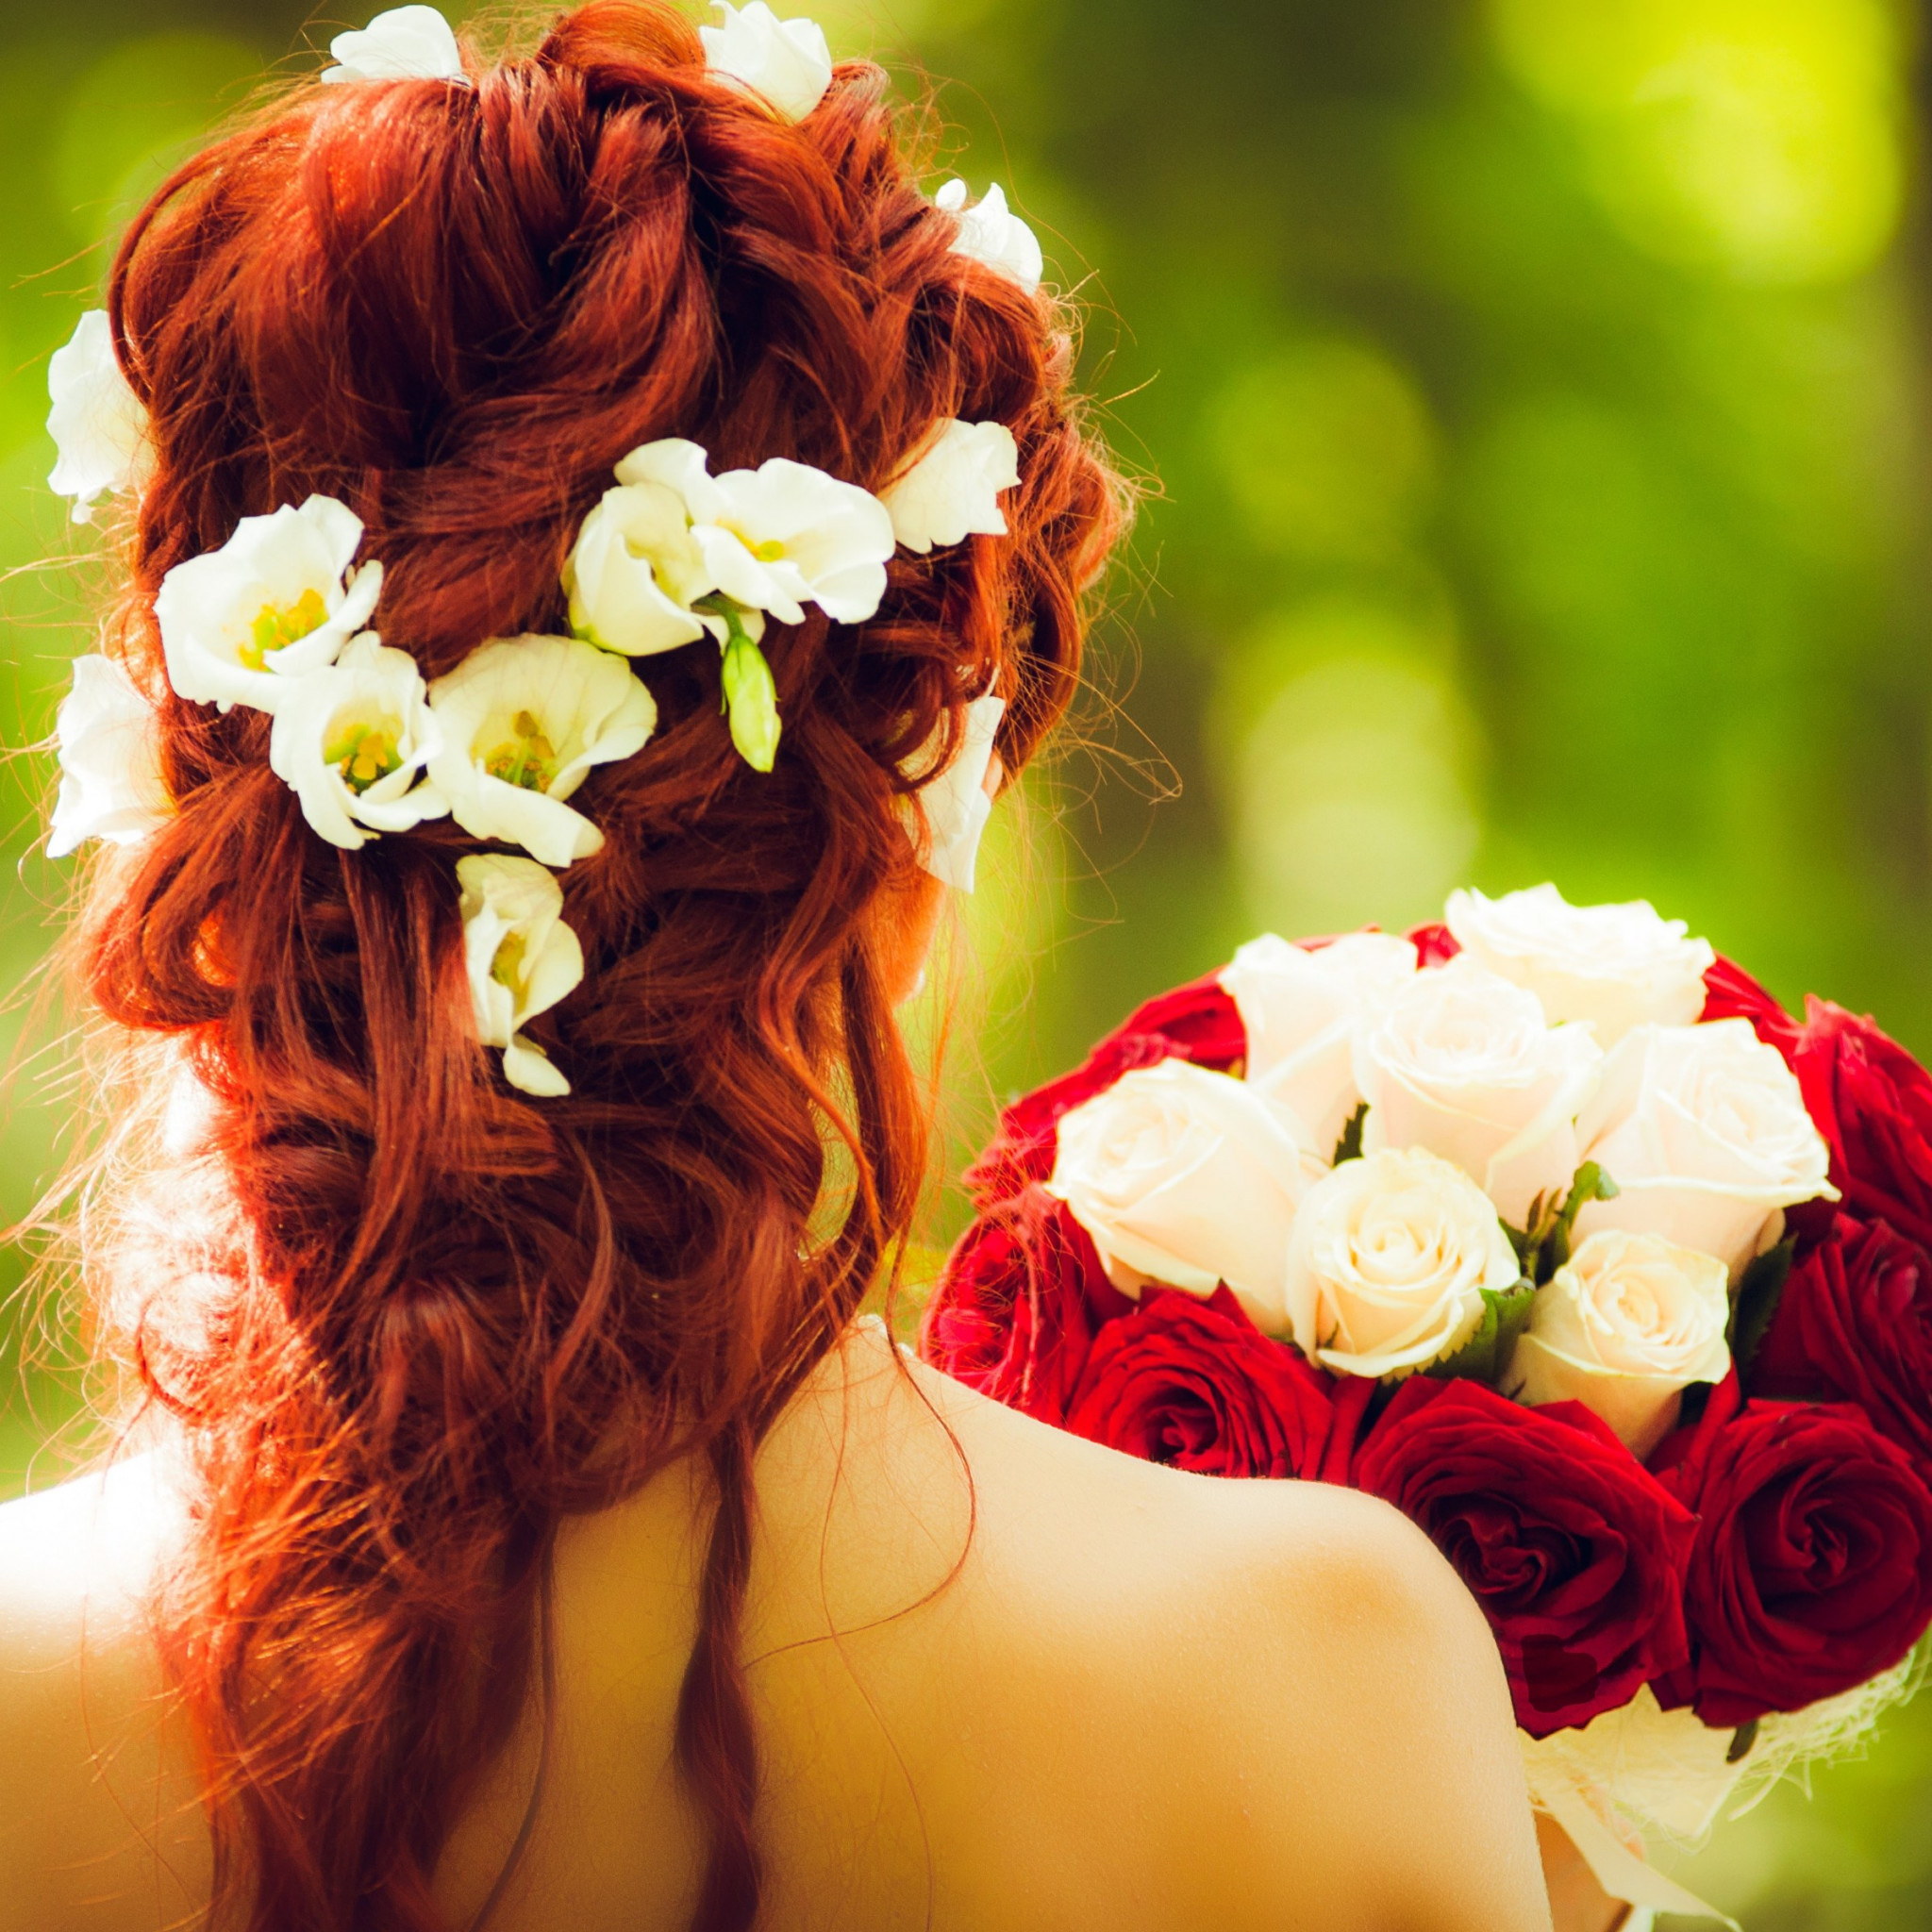 Bride and wedding flowers wallpaper 2048x2048